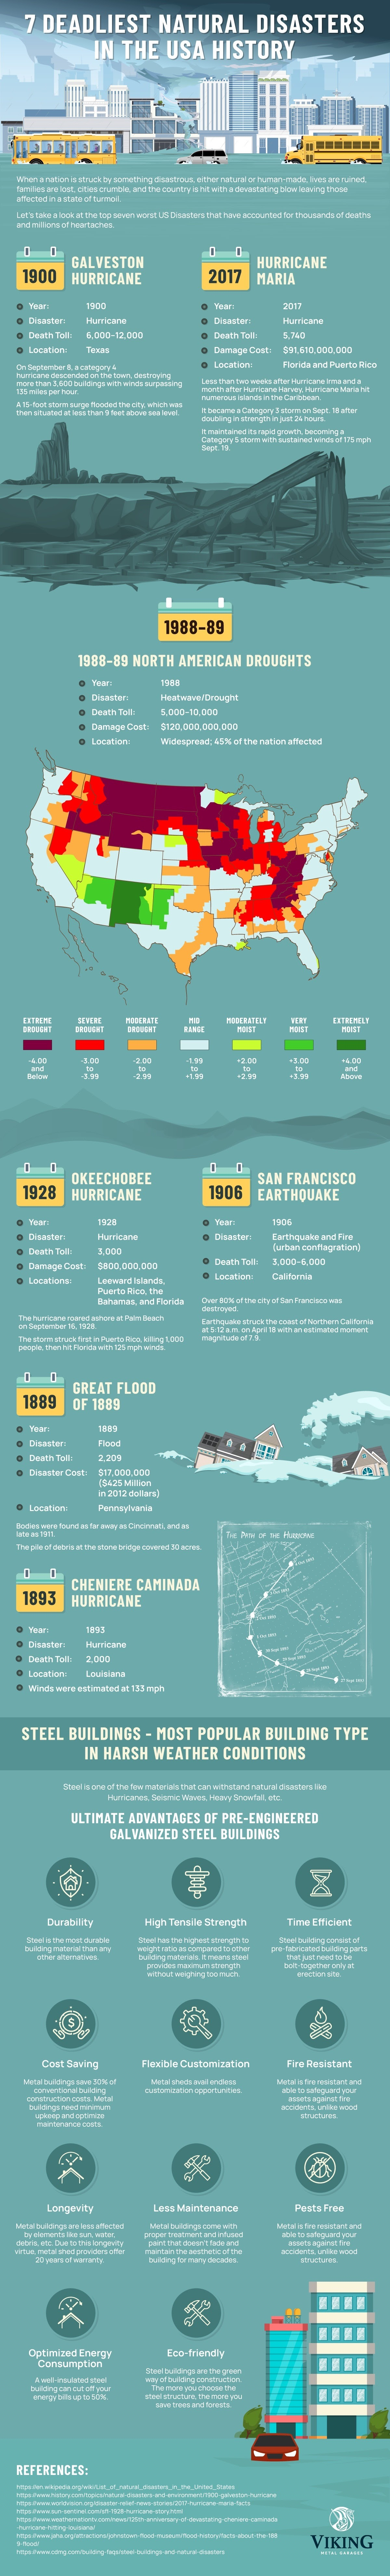 7-deadliest-natural-disasters-in-the-usa-history-infographic